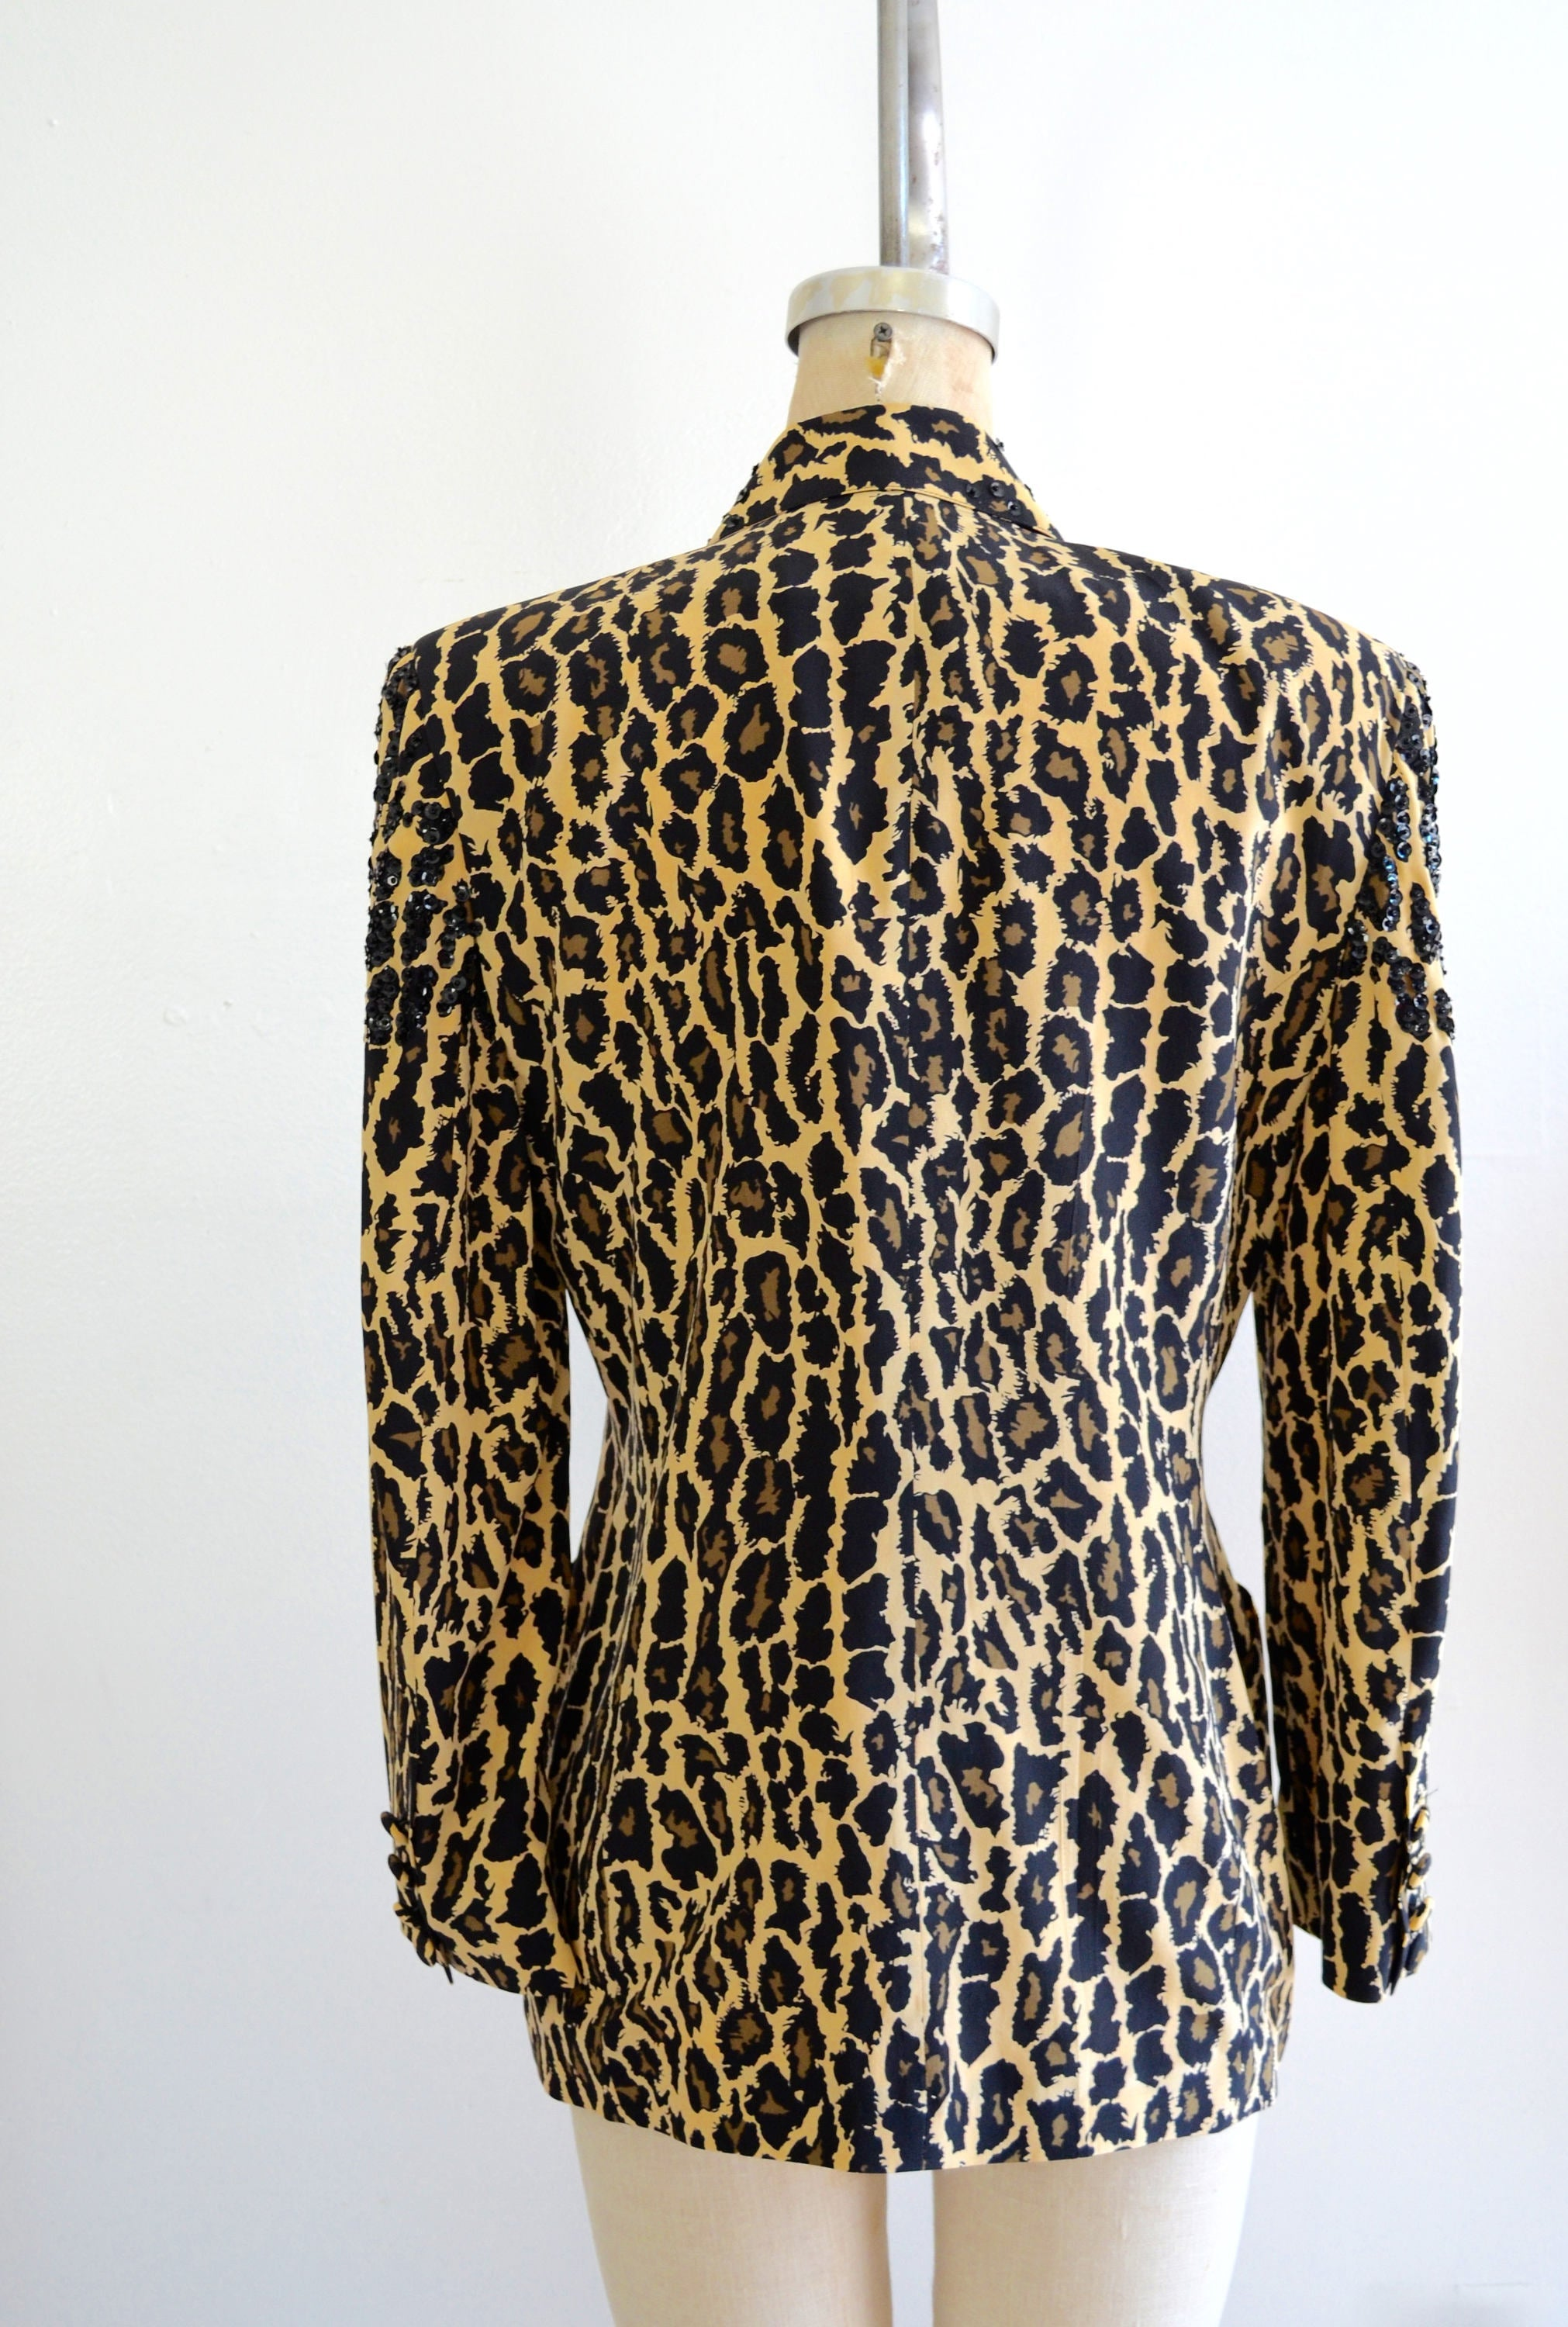 Silk Black Leopard Sequins Animal Print Beaded Blazer Jacket Eleanor P Brenner Size 4